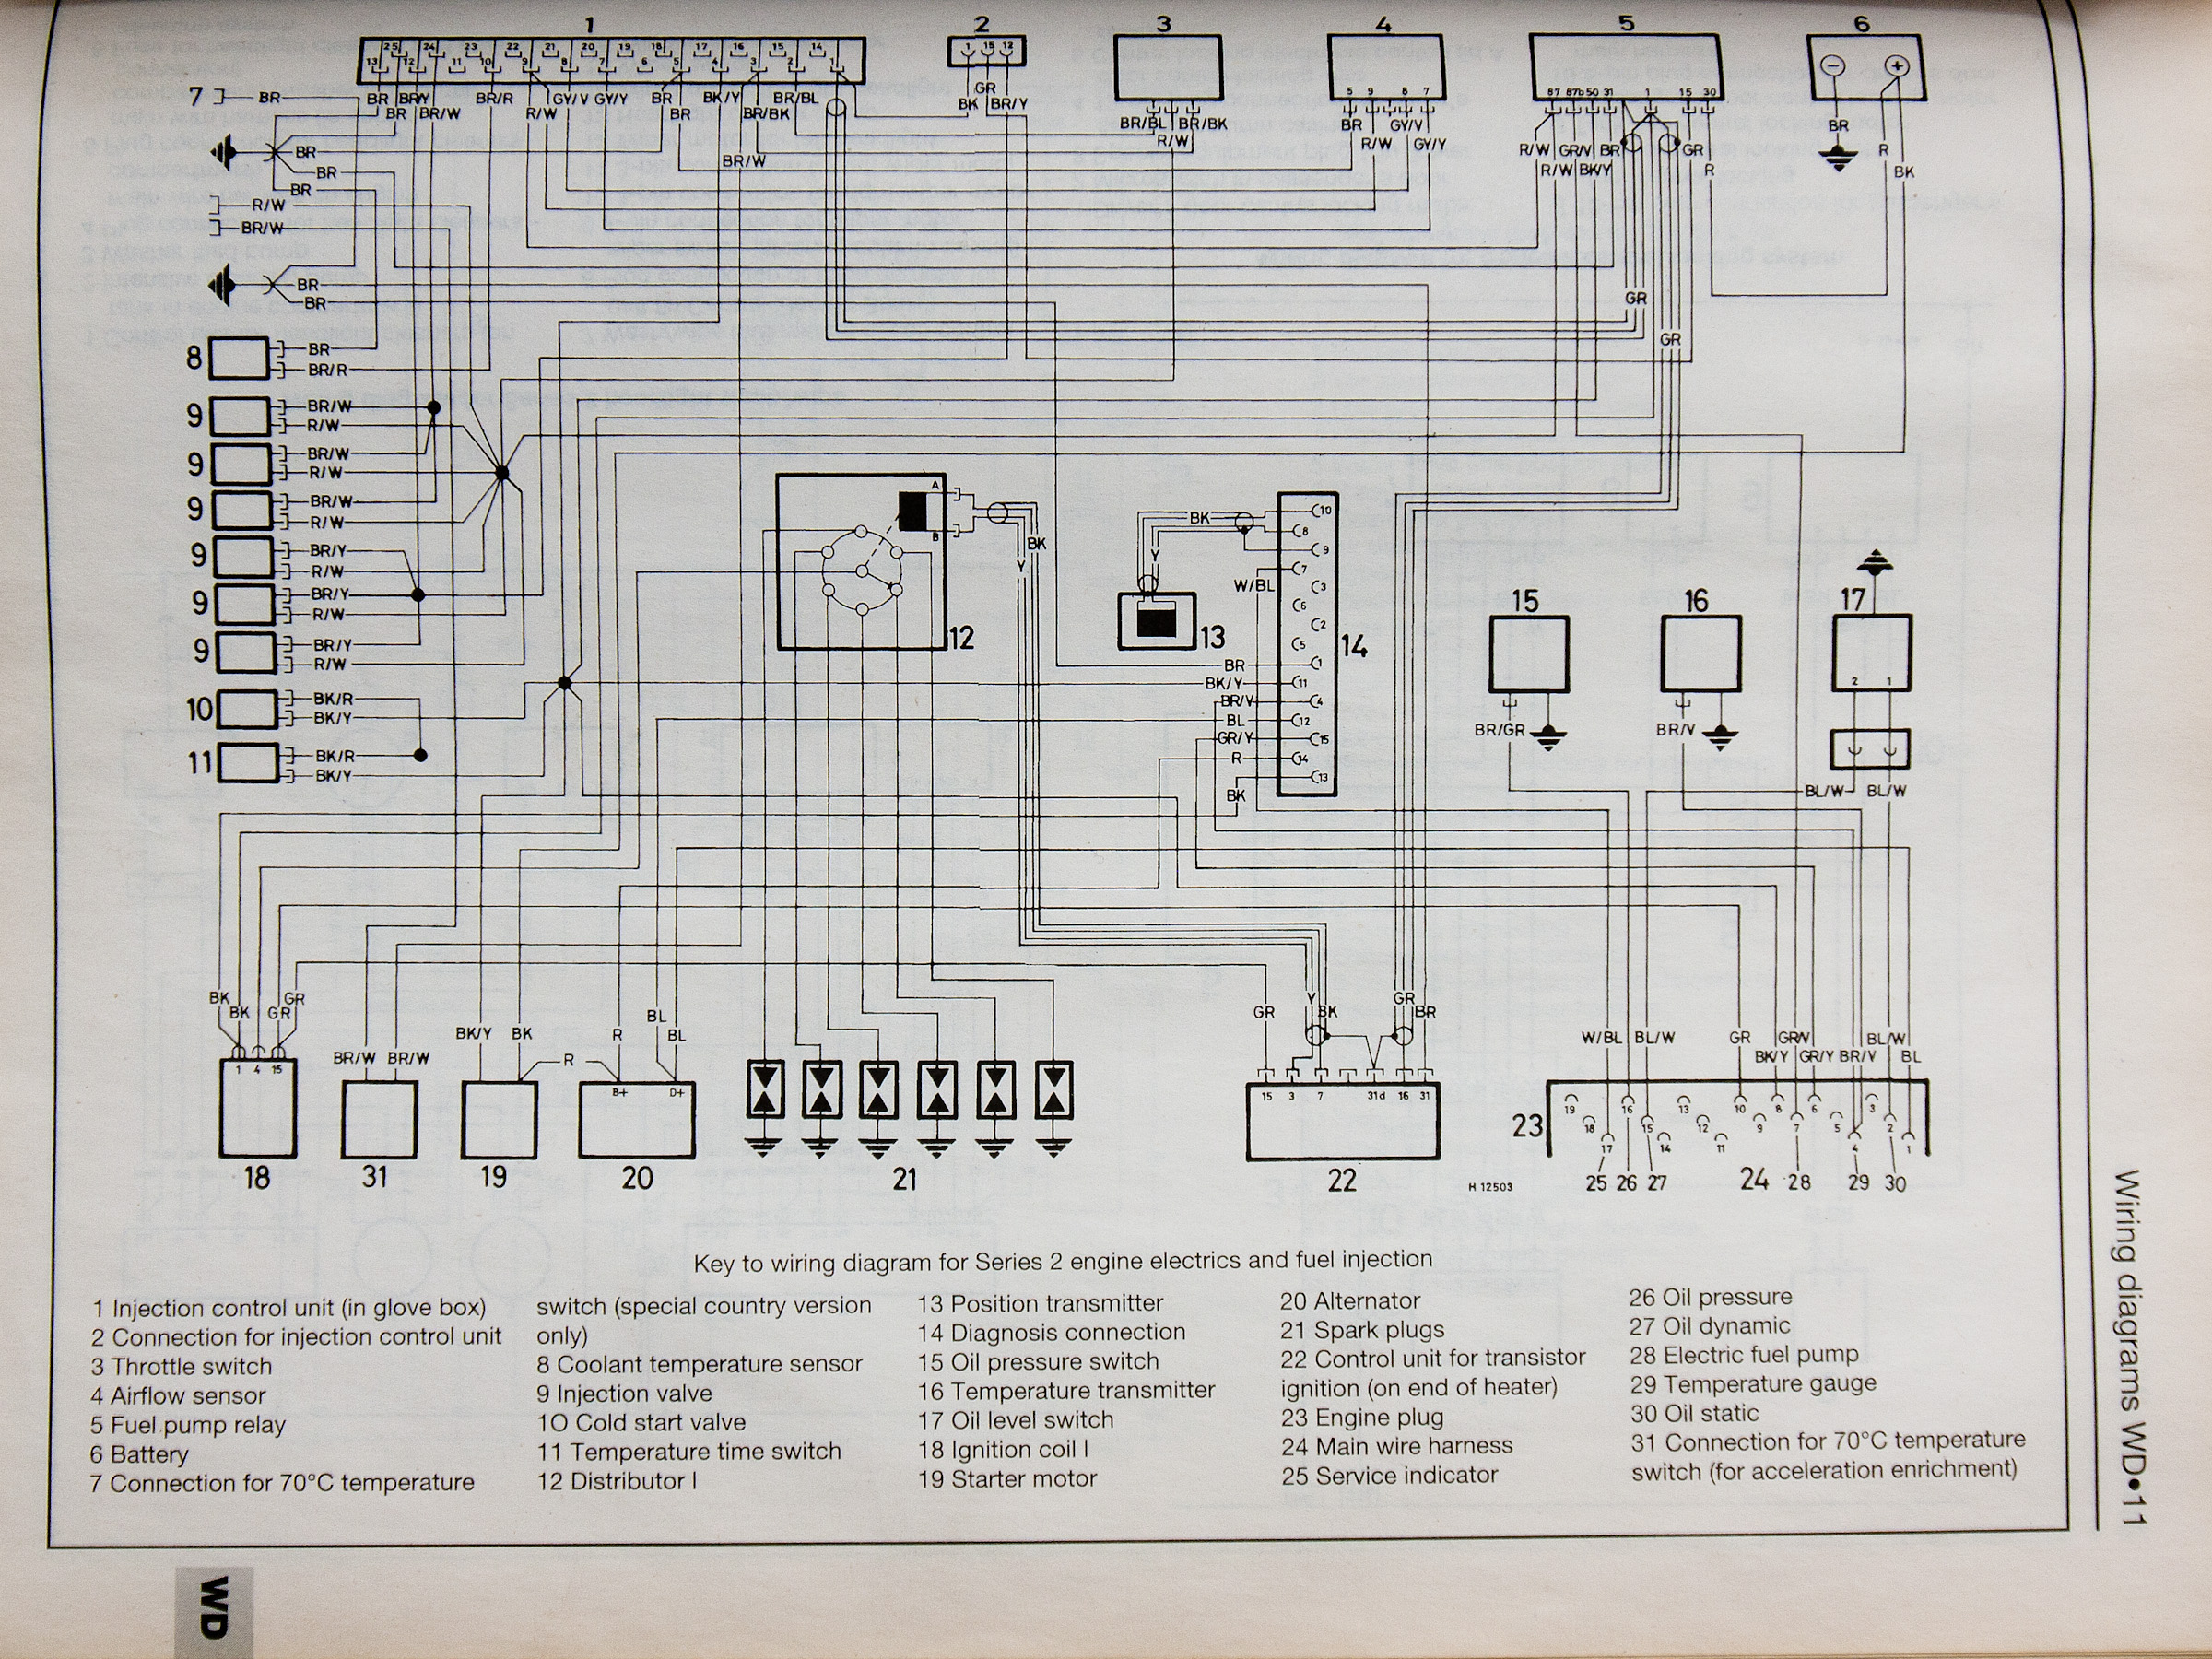 Bmw i fuse box diagram engine free image